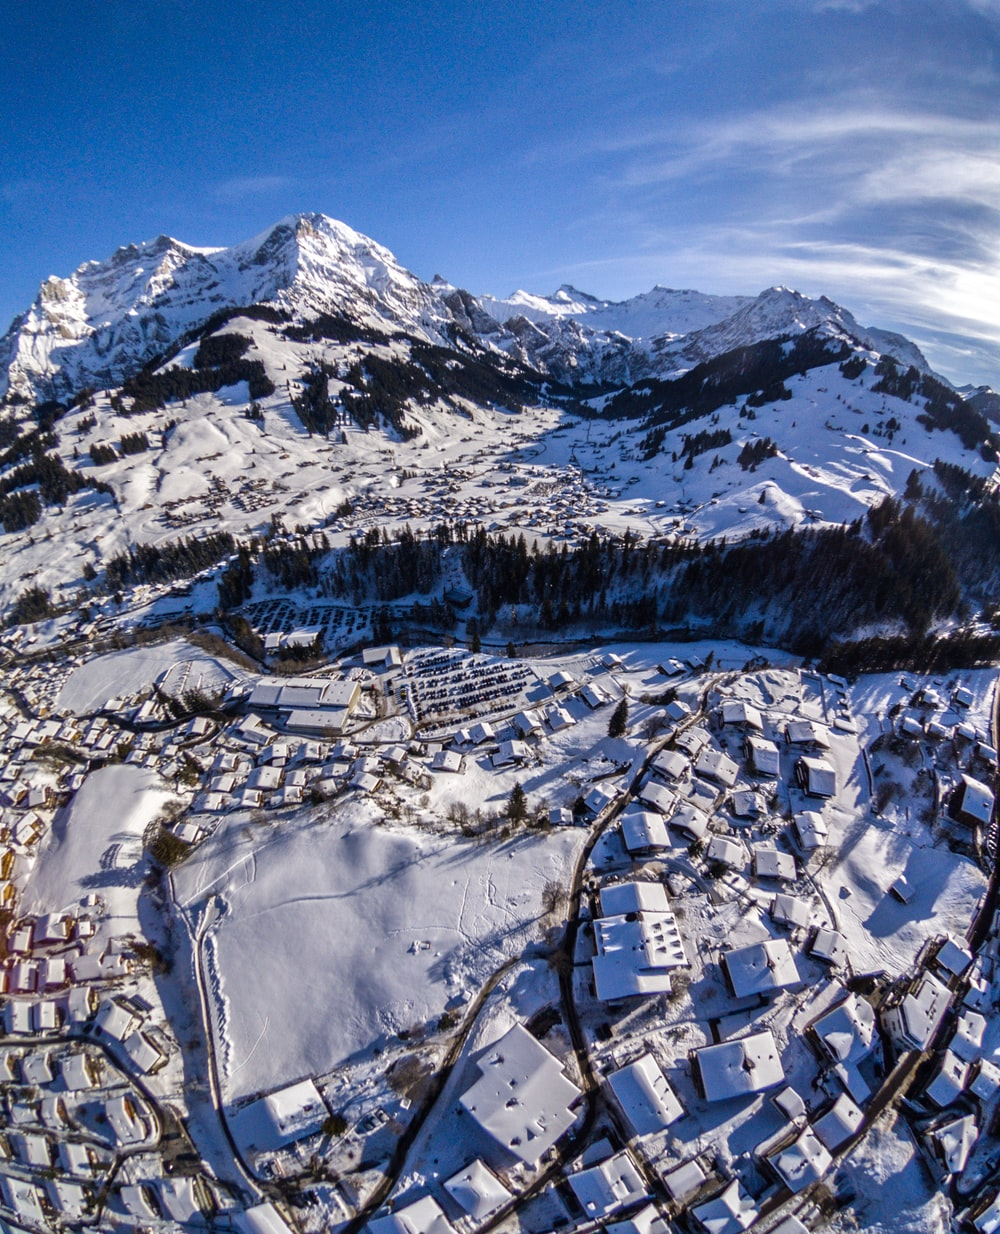 snow capped village near mountain during daytime